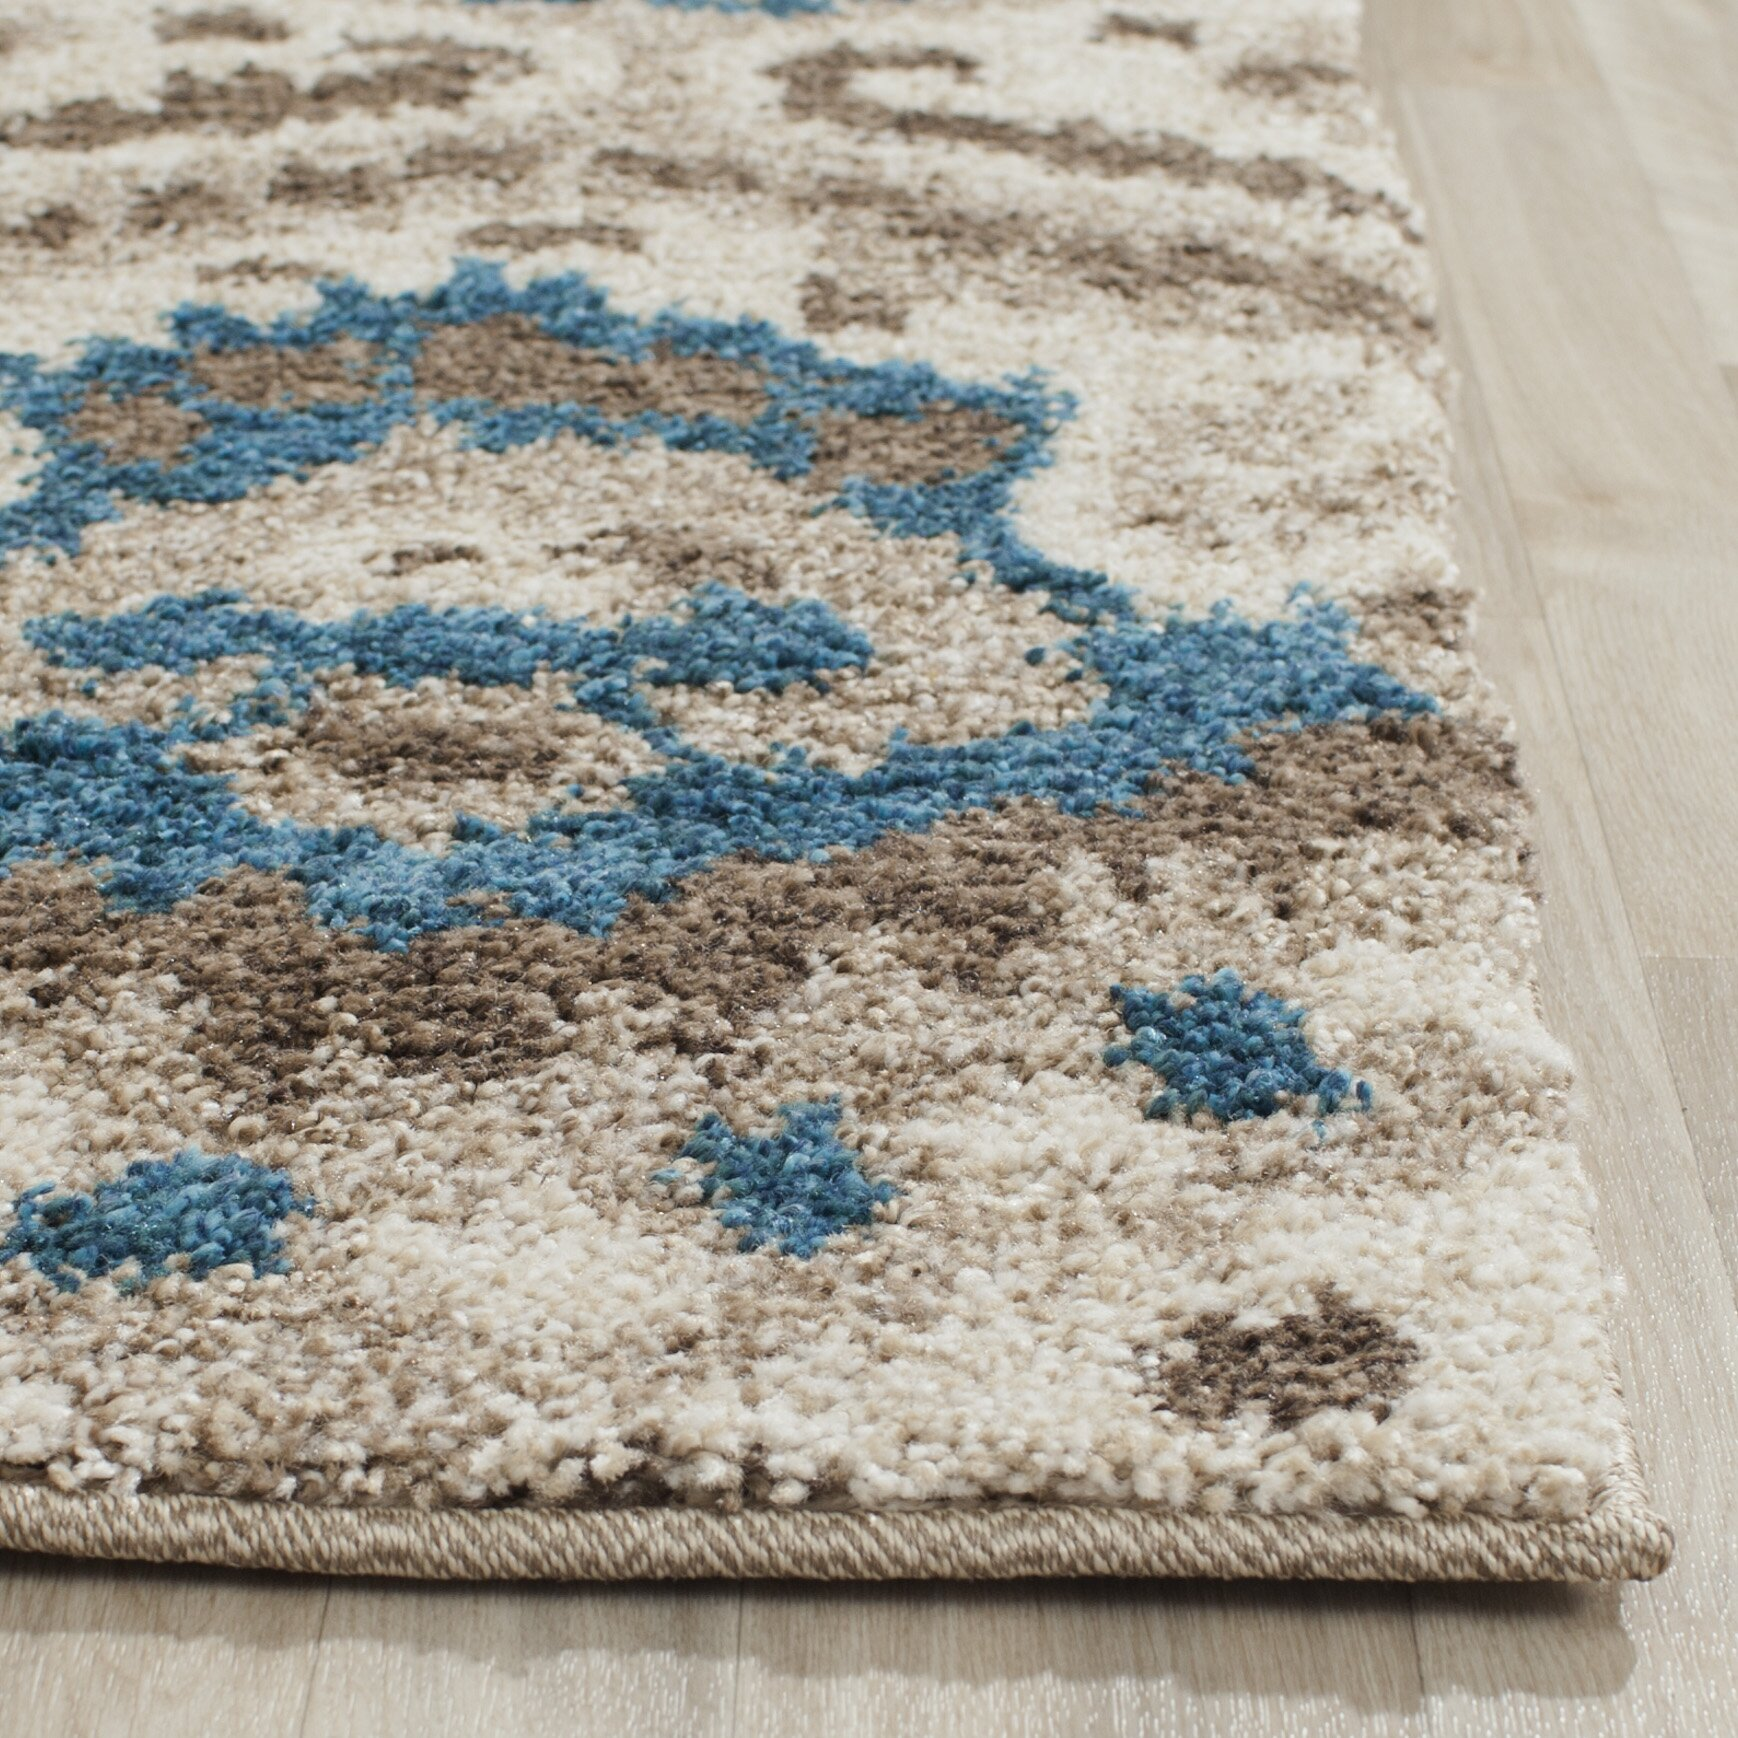 Turquoise And Brown Rug: Safavieh Tibetan Brown/Turquoise Ikat Rug & Reviews